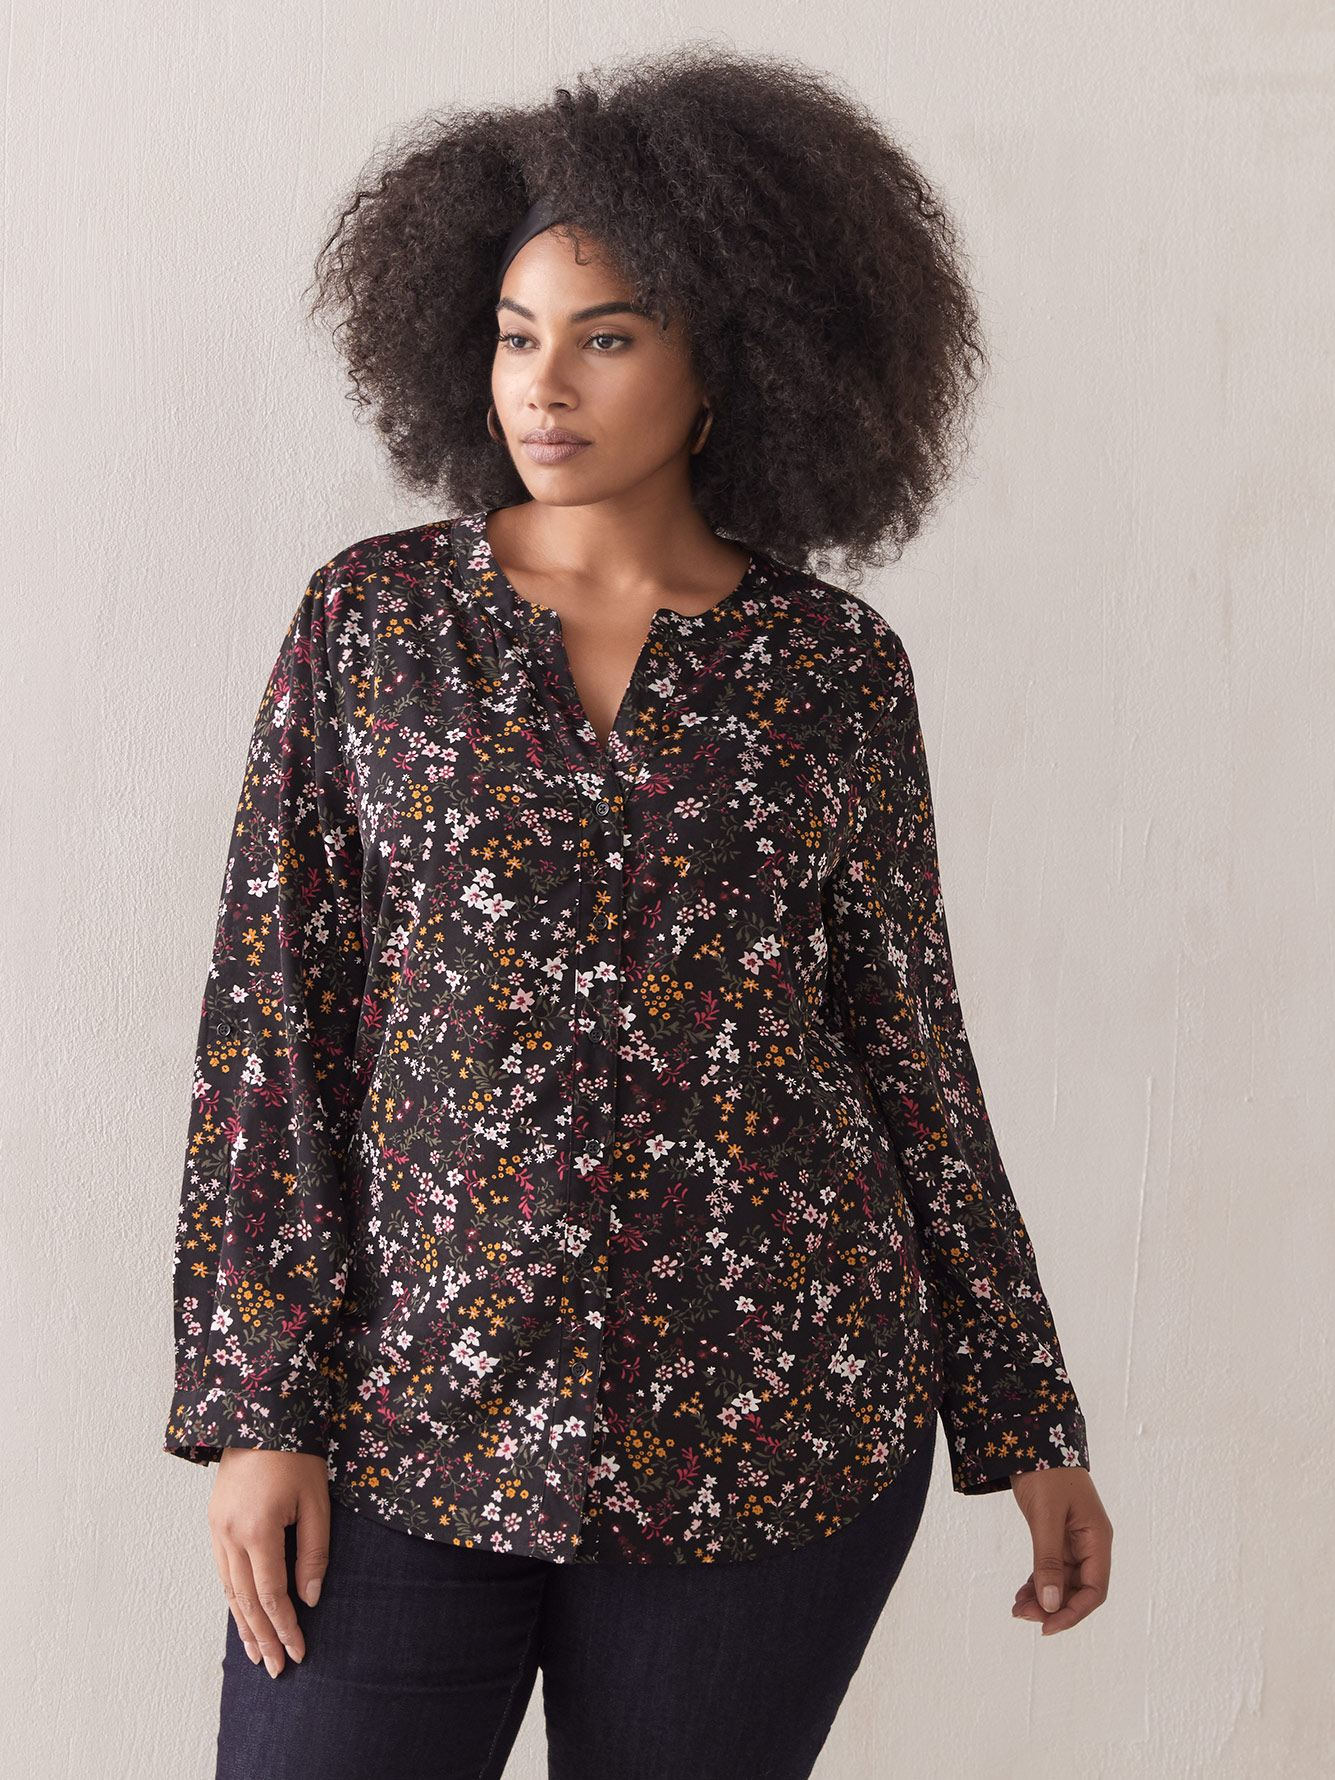 Long Sleeve Blouse - In Every Story